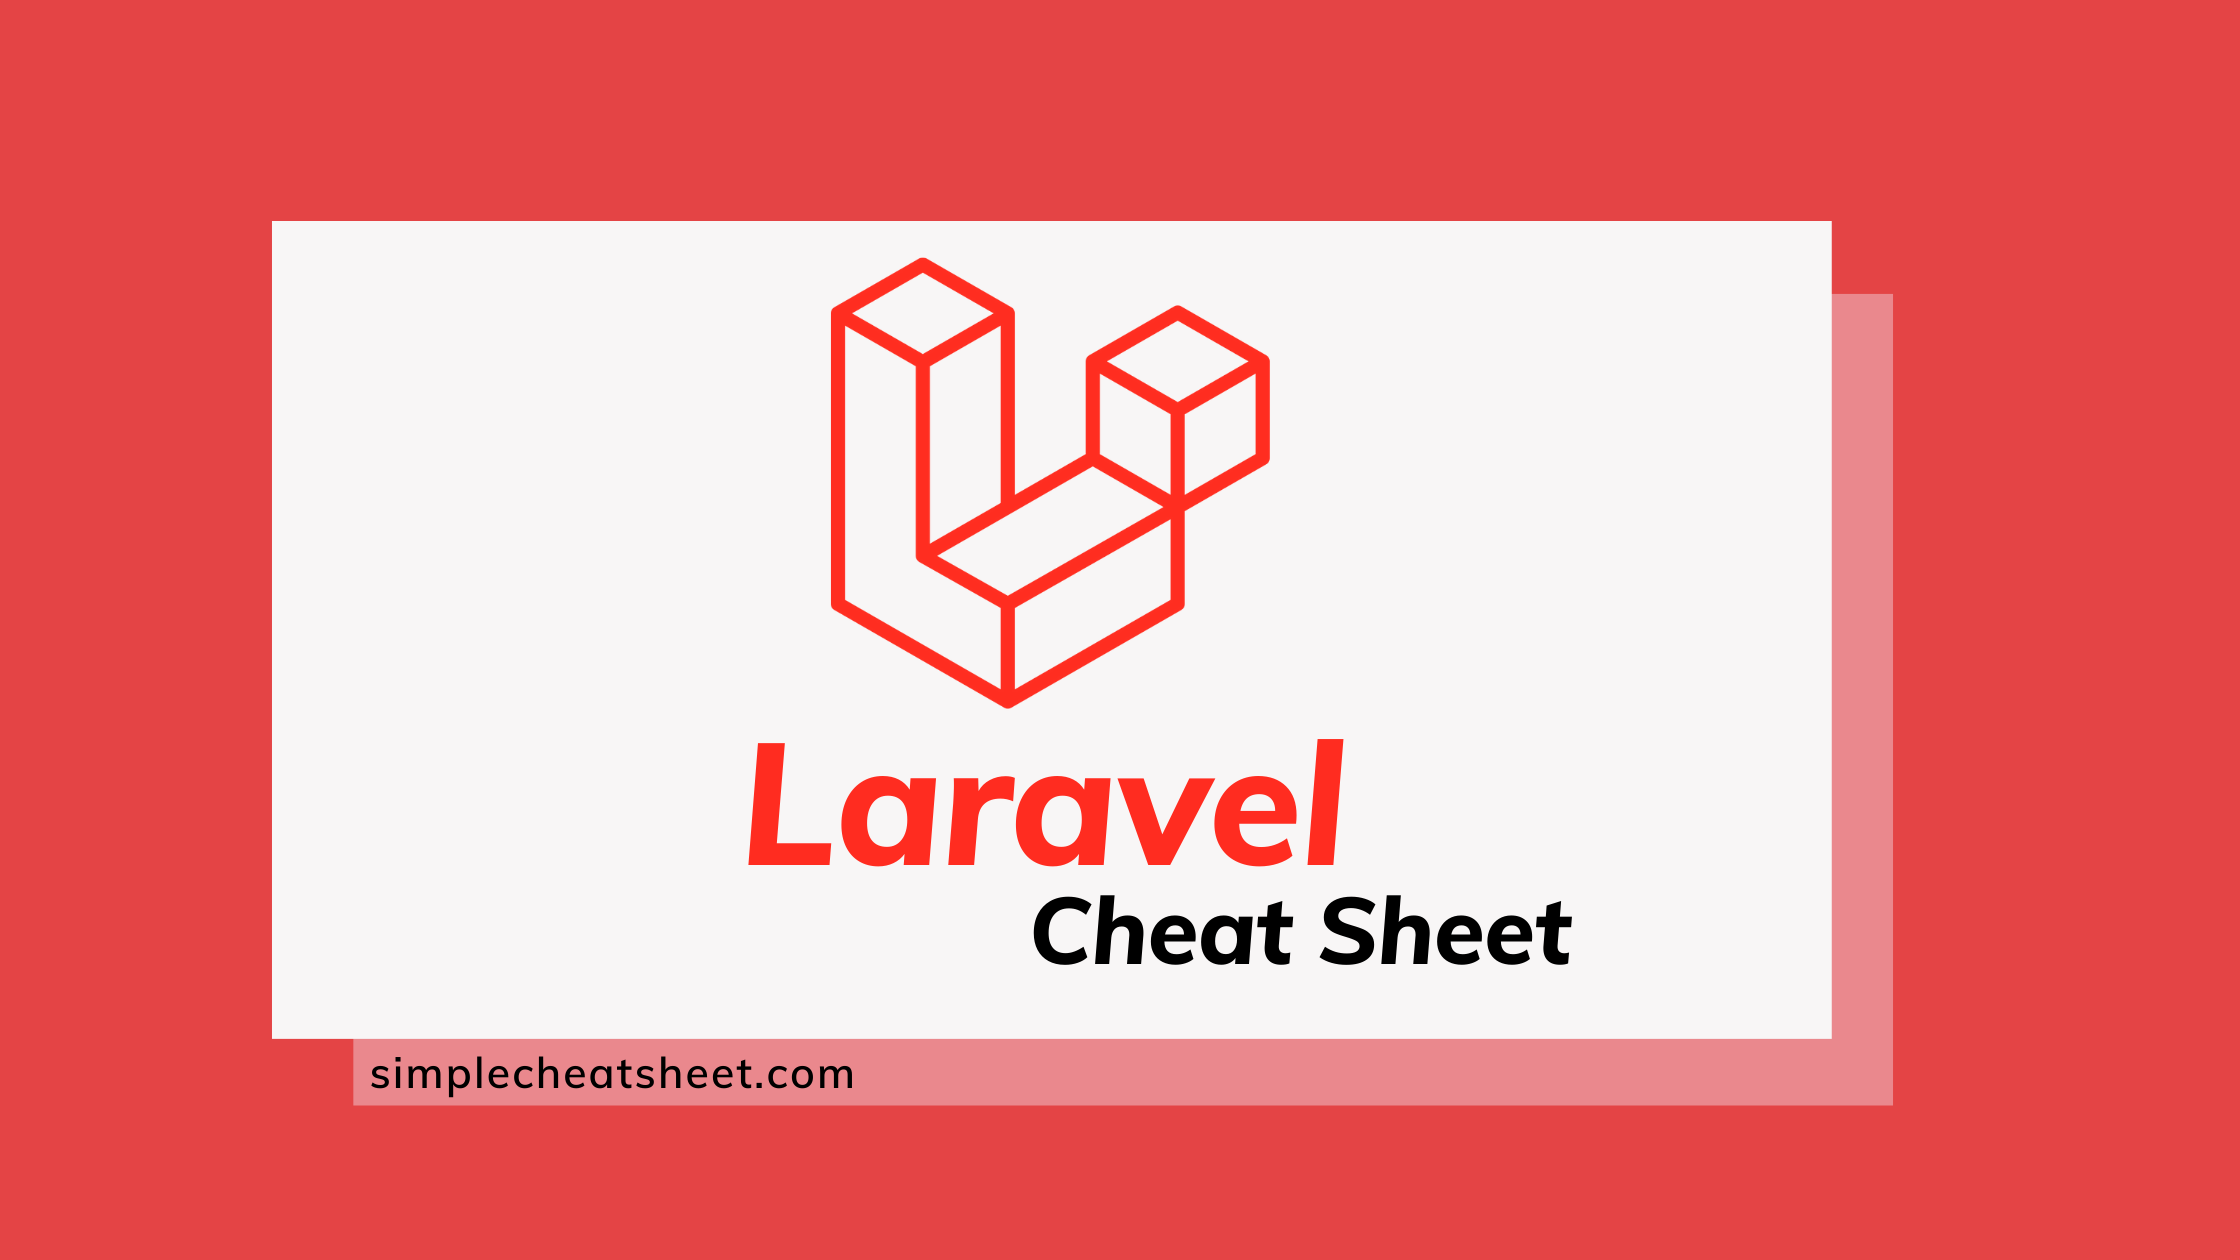 Laravel Cheat Sheet